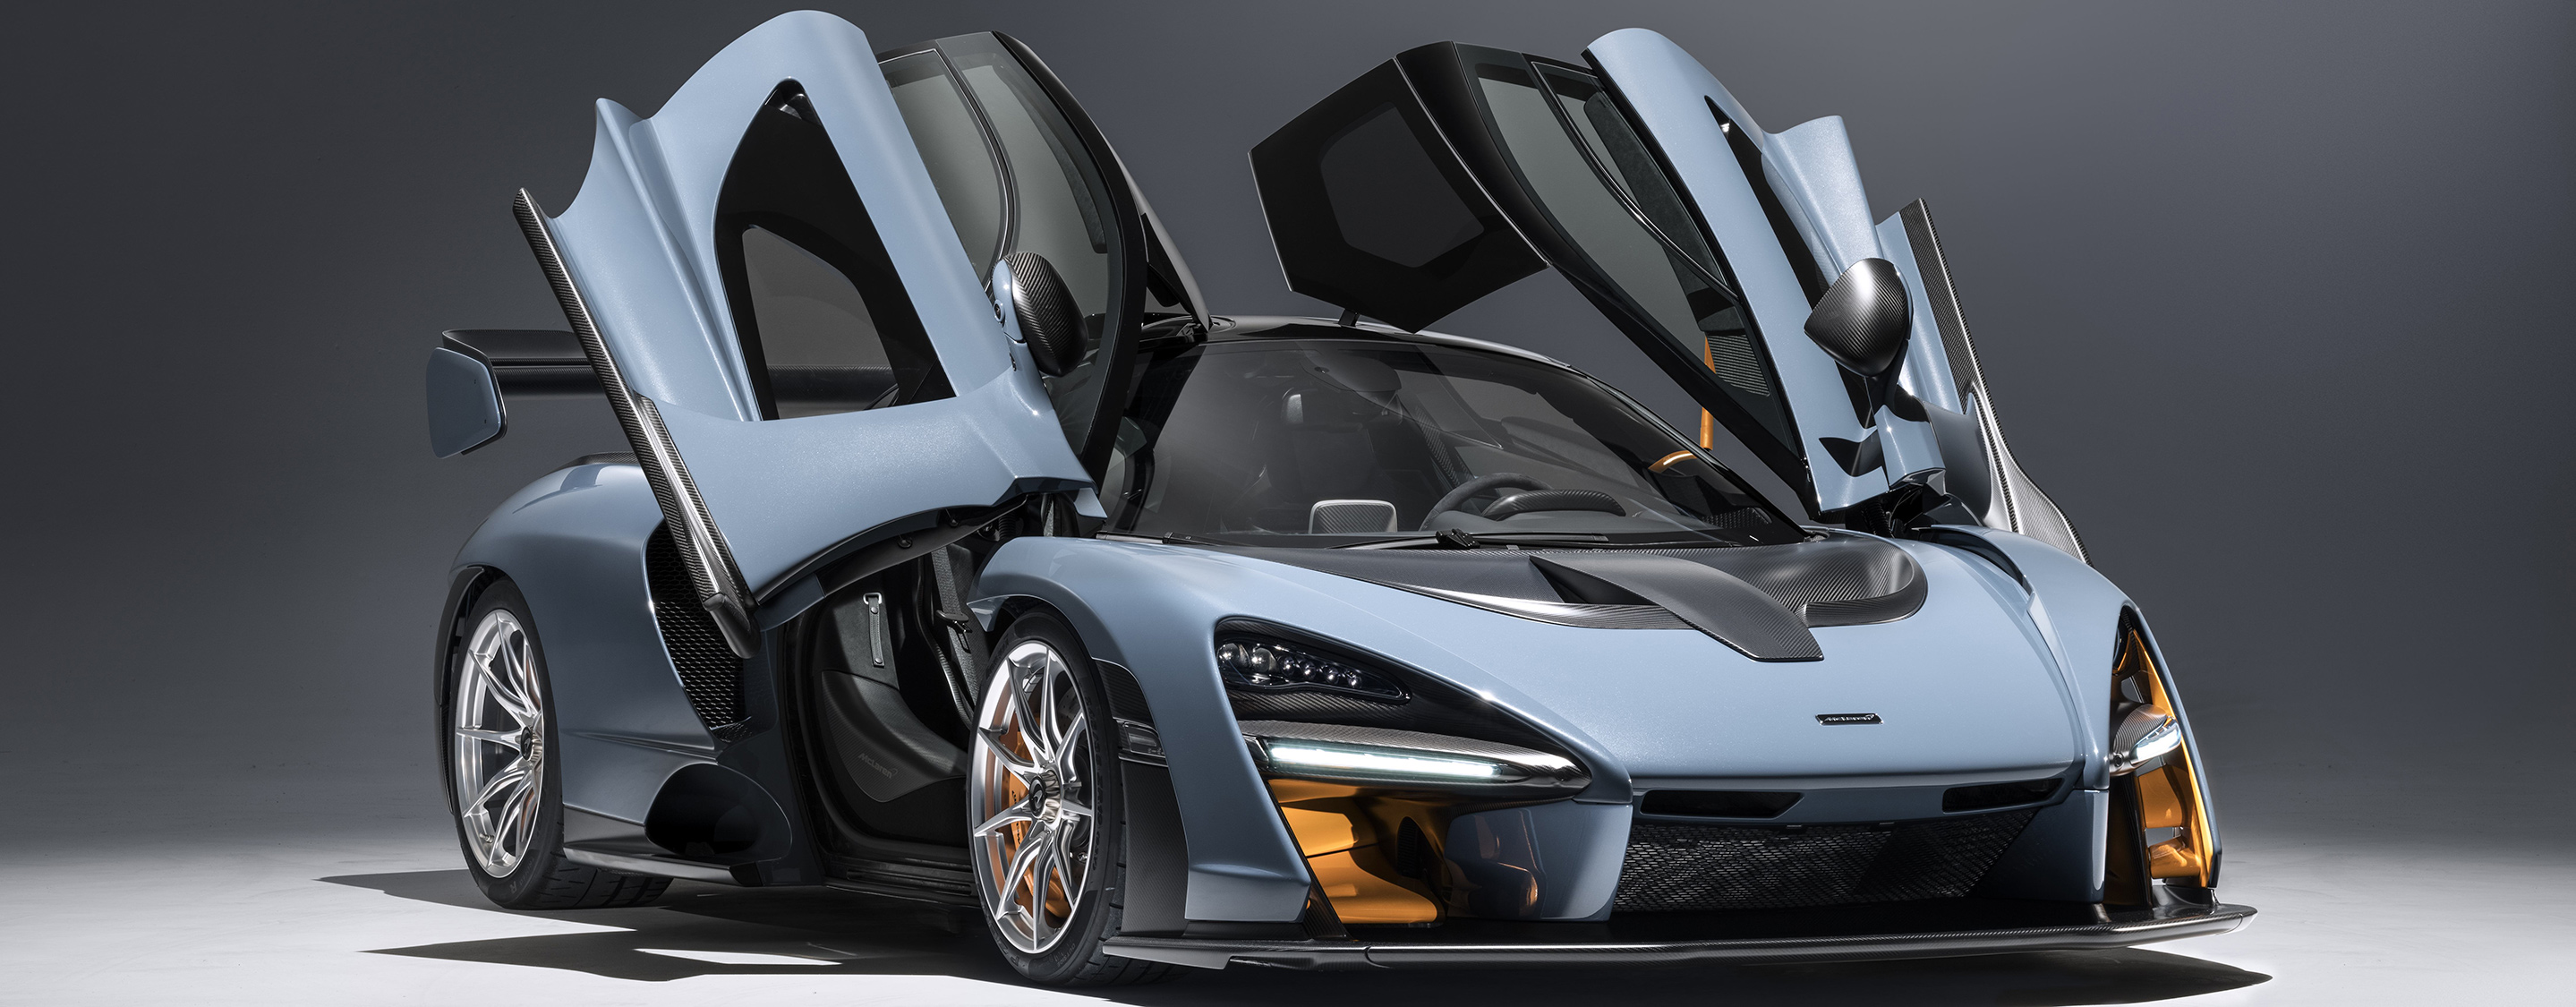 TrackWorthy - McLaren Senna in Victory Grey (2)